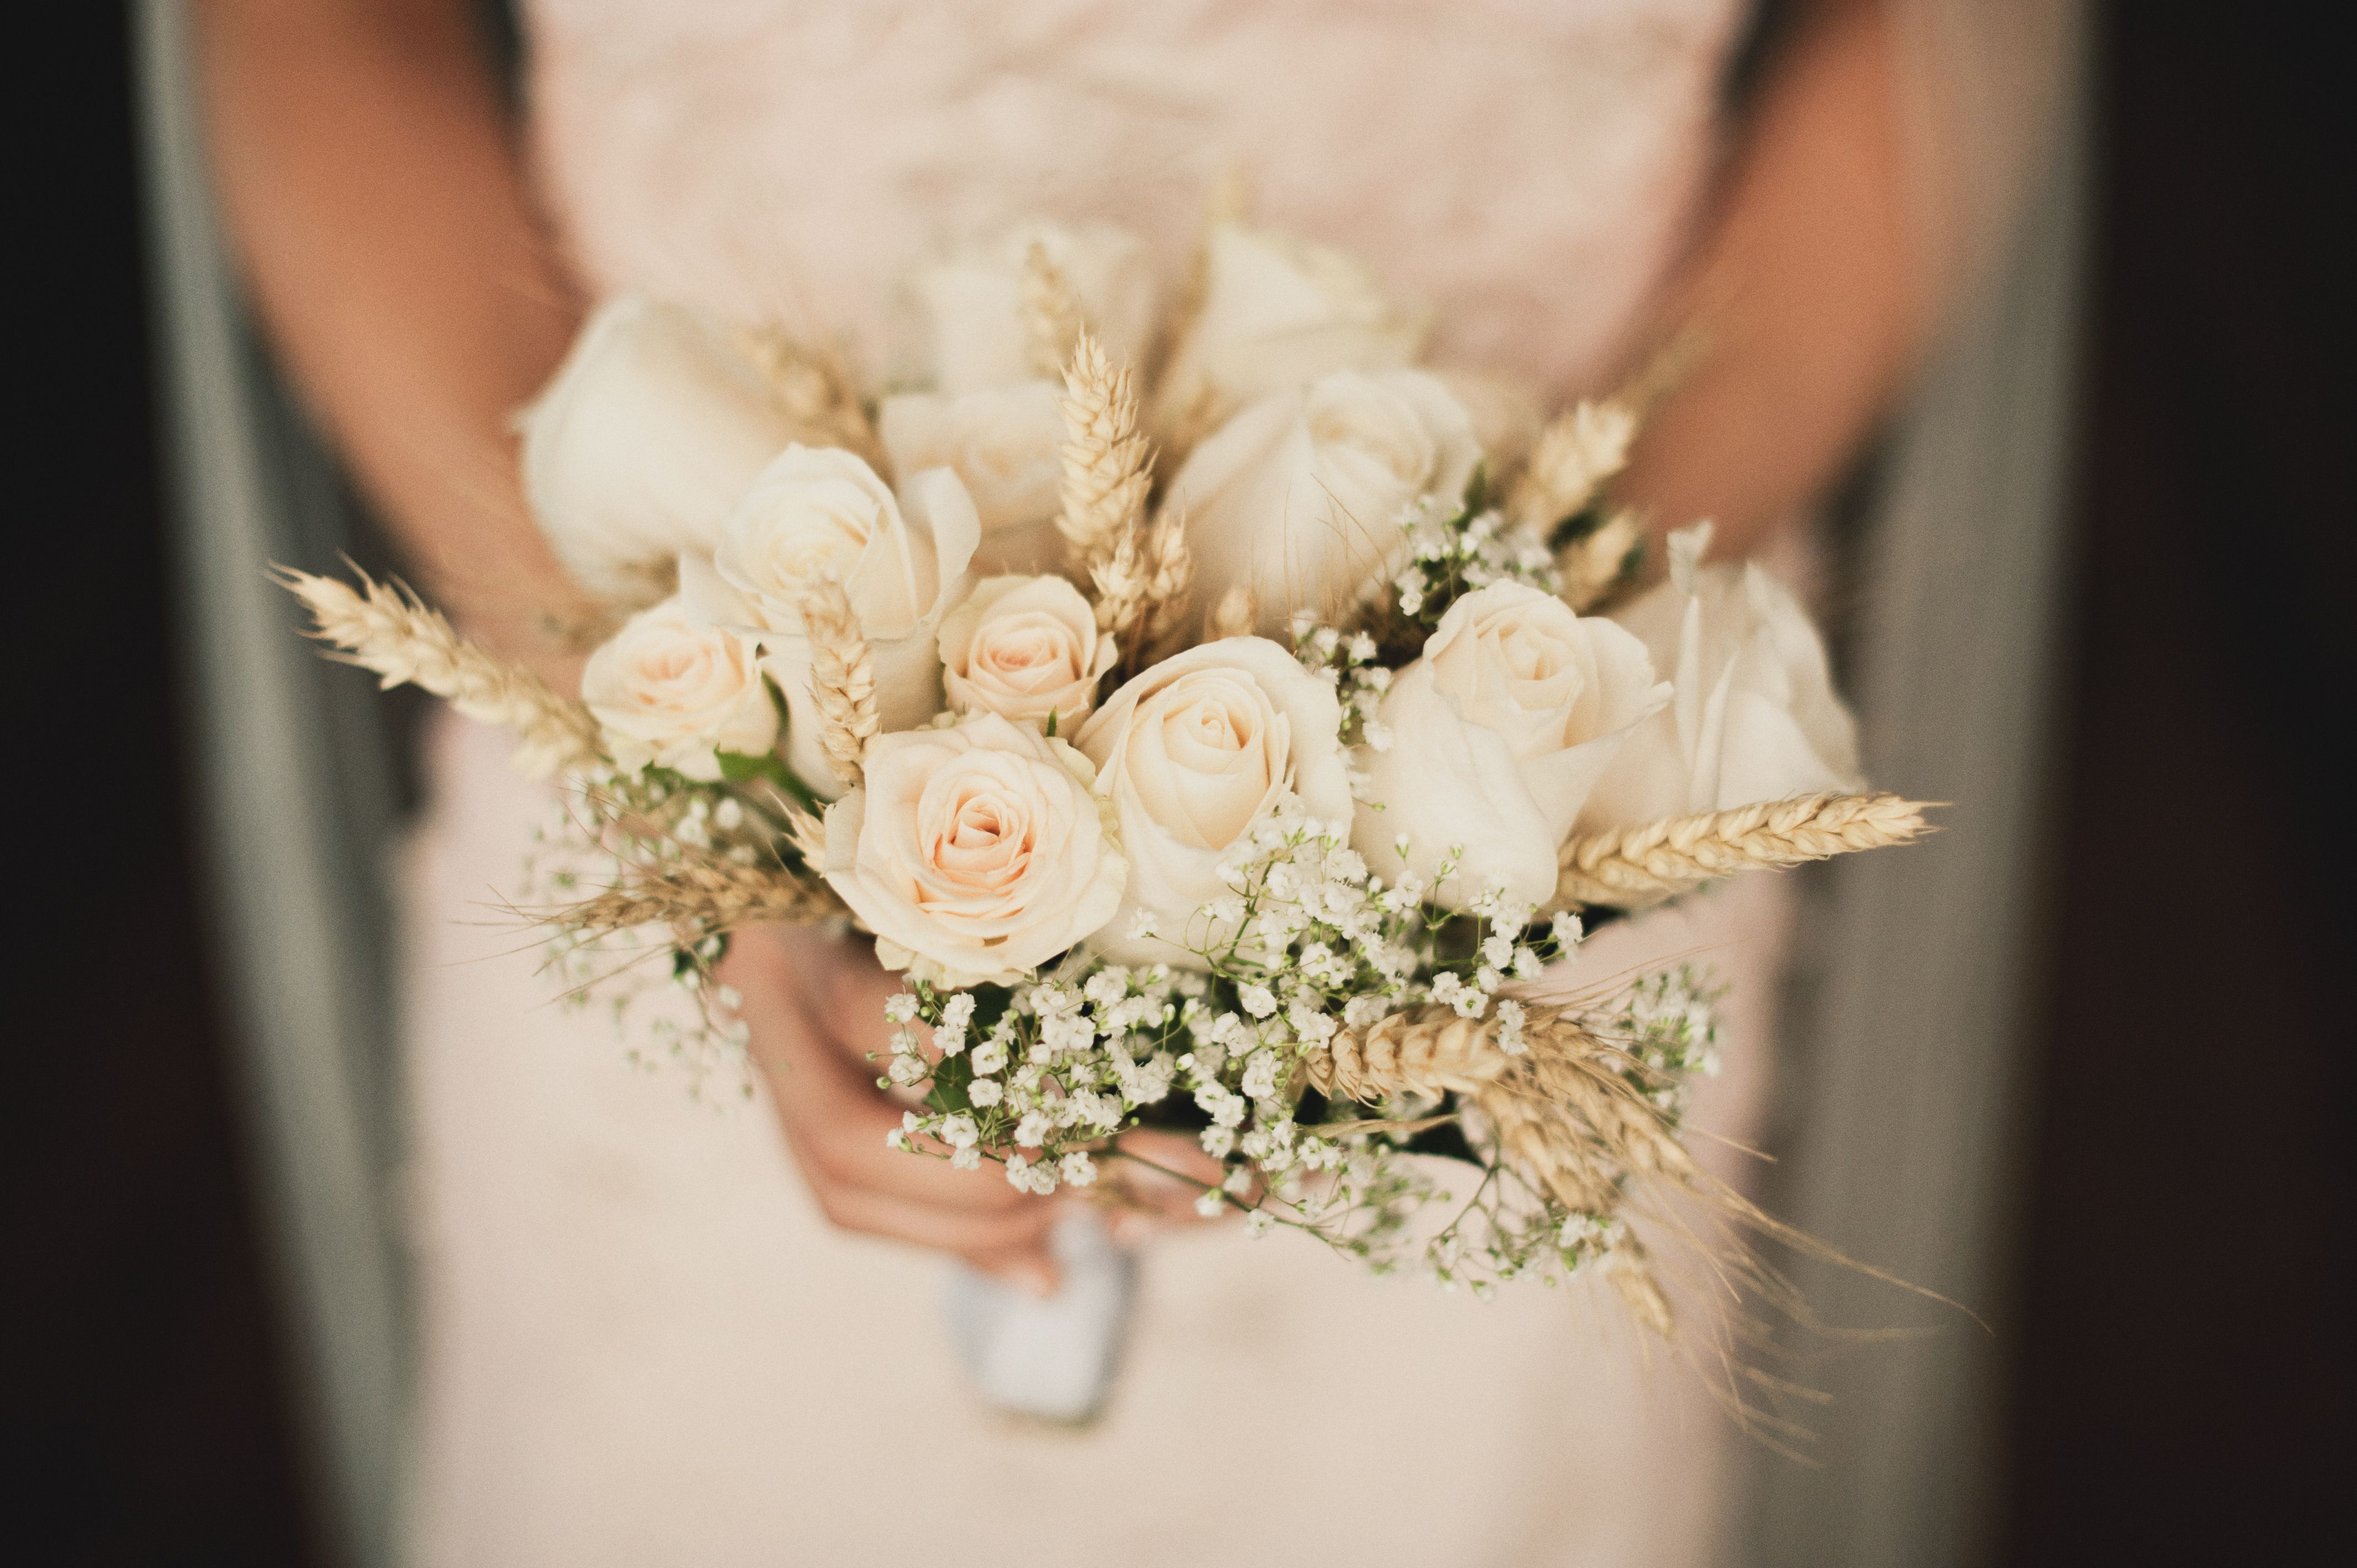 Lol Idk About The Wheat But Roses And Babies Breath Bouquet